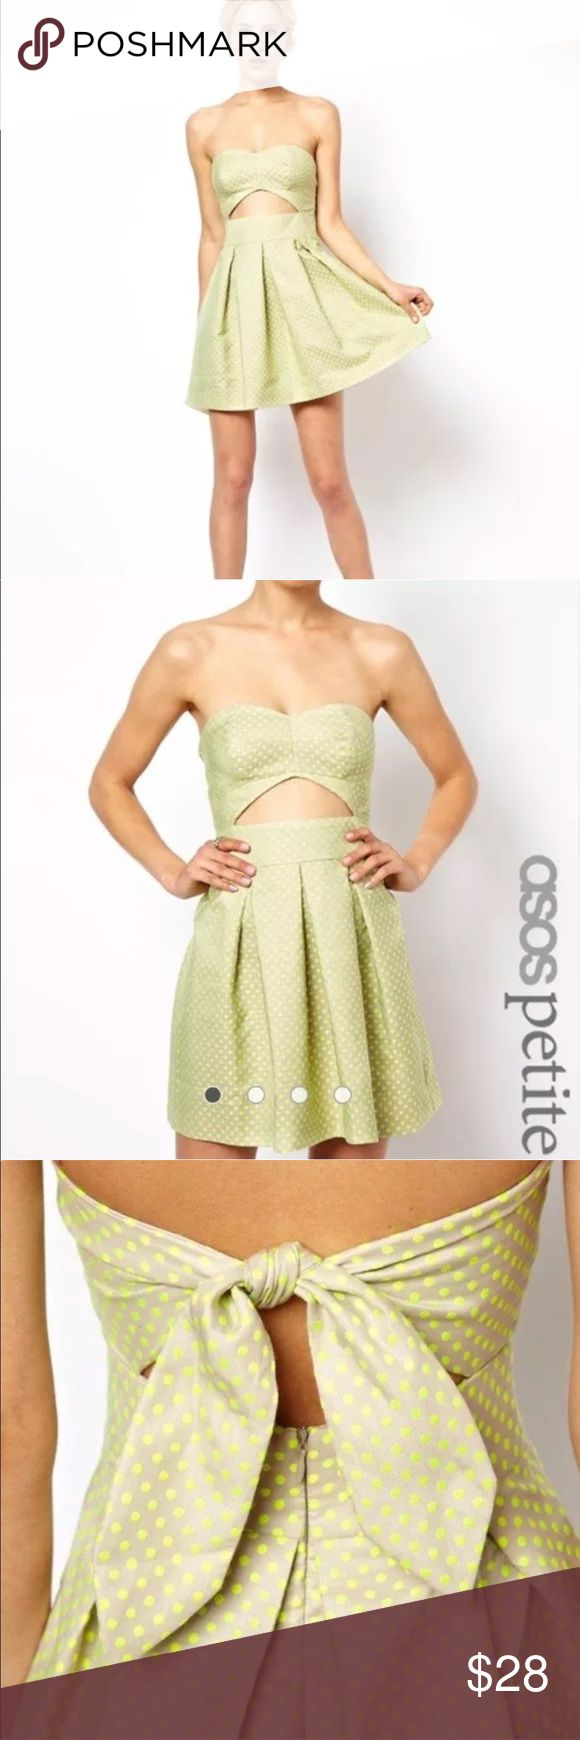 Asos Petite Polka Dot Cut Out Skater Dress Green Asos Petite Polka Dot Cut Out Skater Dress A Line Tie Back Neon Green Beige US 2. Some fading and wear on embroidery   Bust: 17 Waist: 12 Length: 24 ASOS Petite Dresses Strapless